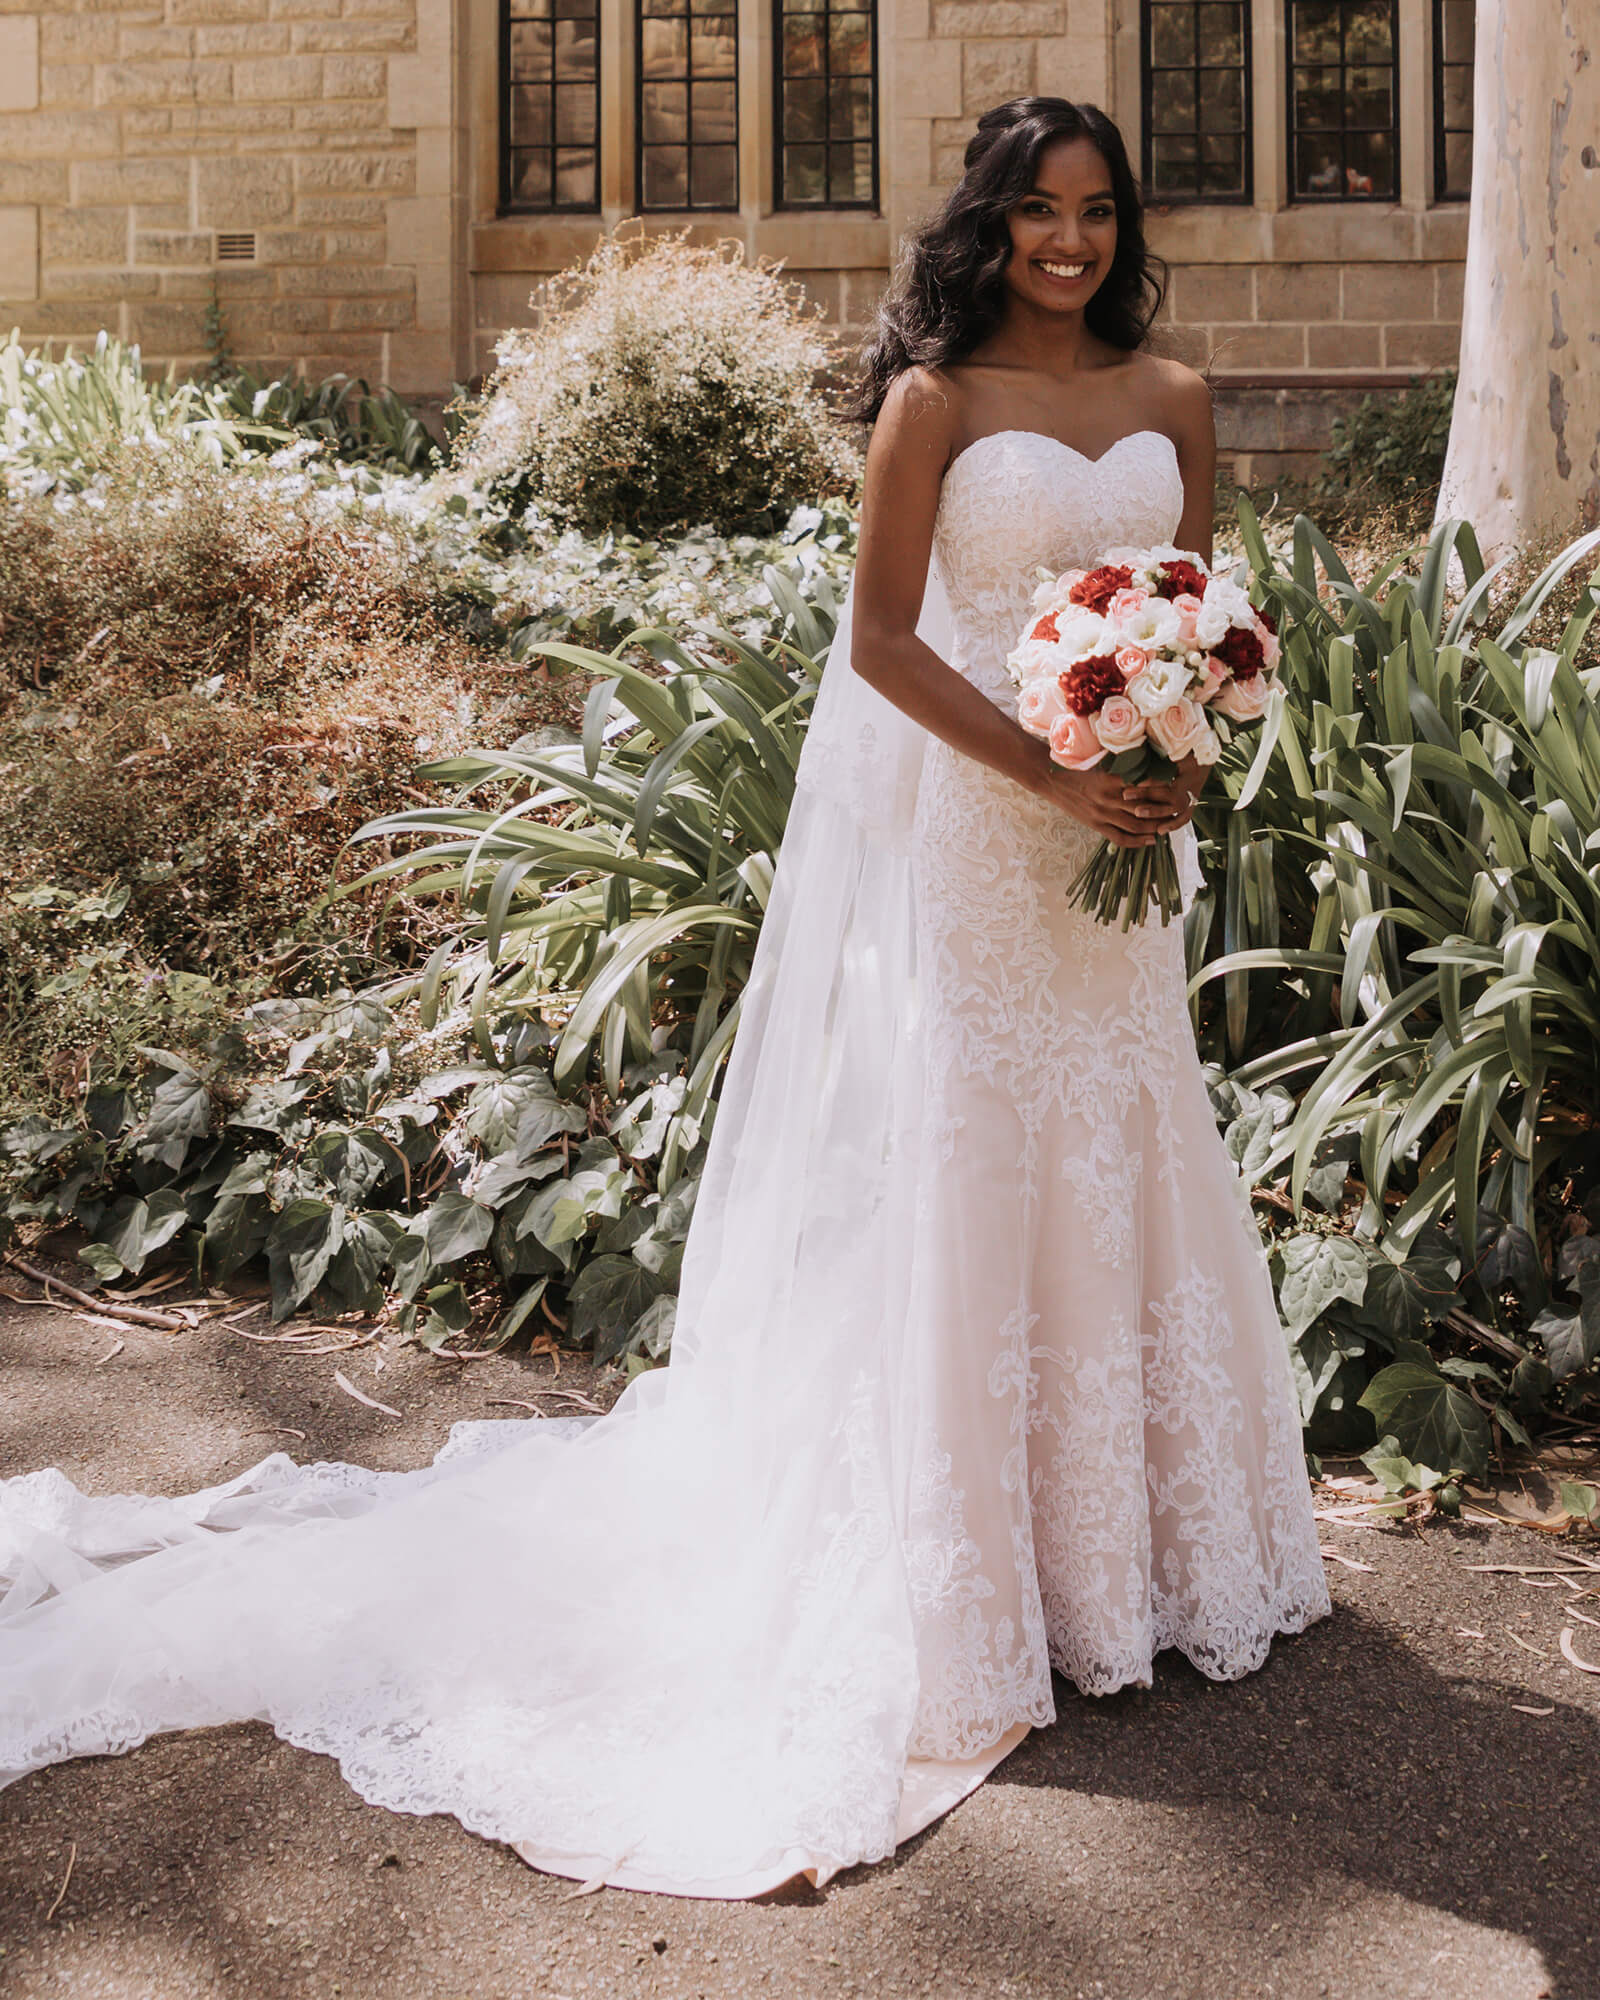 Myosha Looked absolutely stunning in her dream cocomelody wedding dress